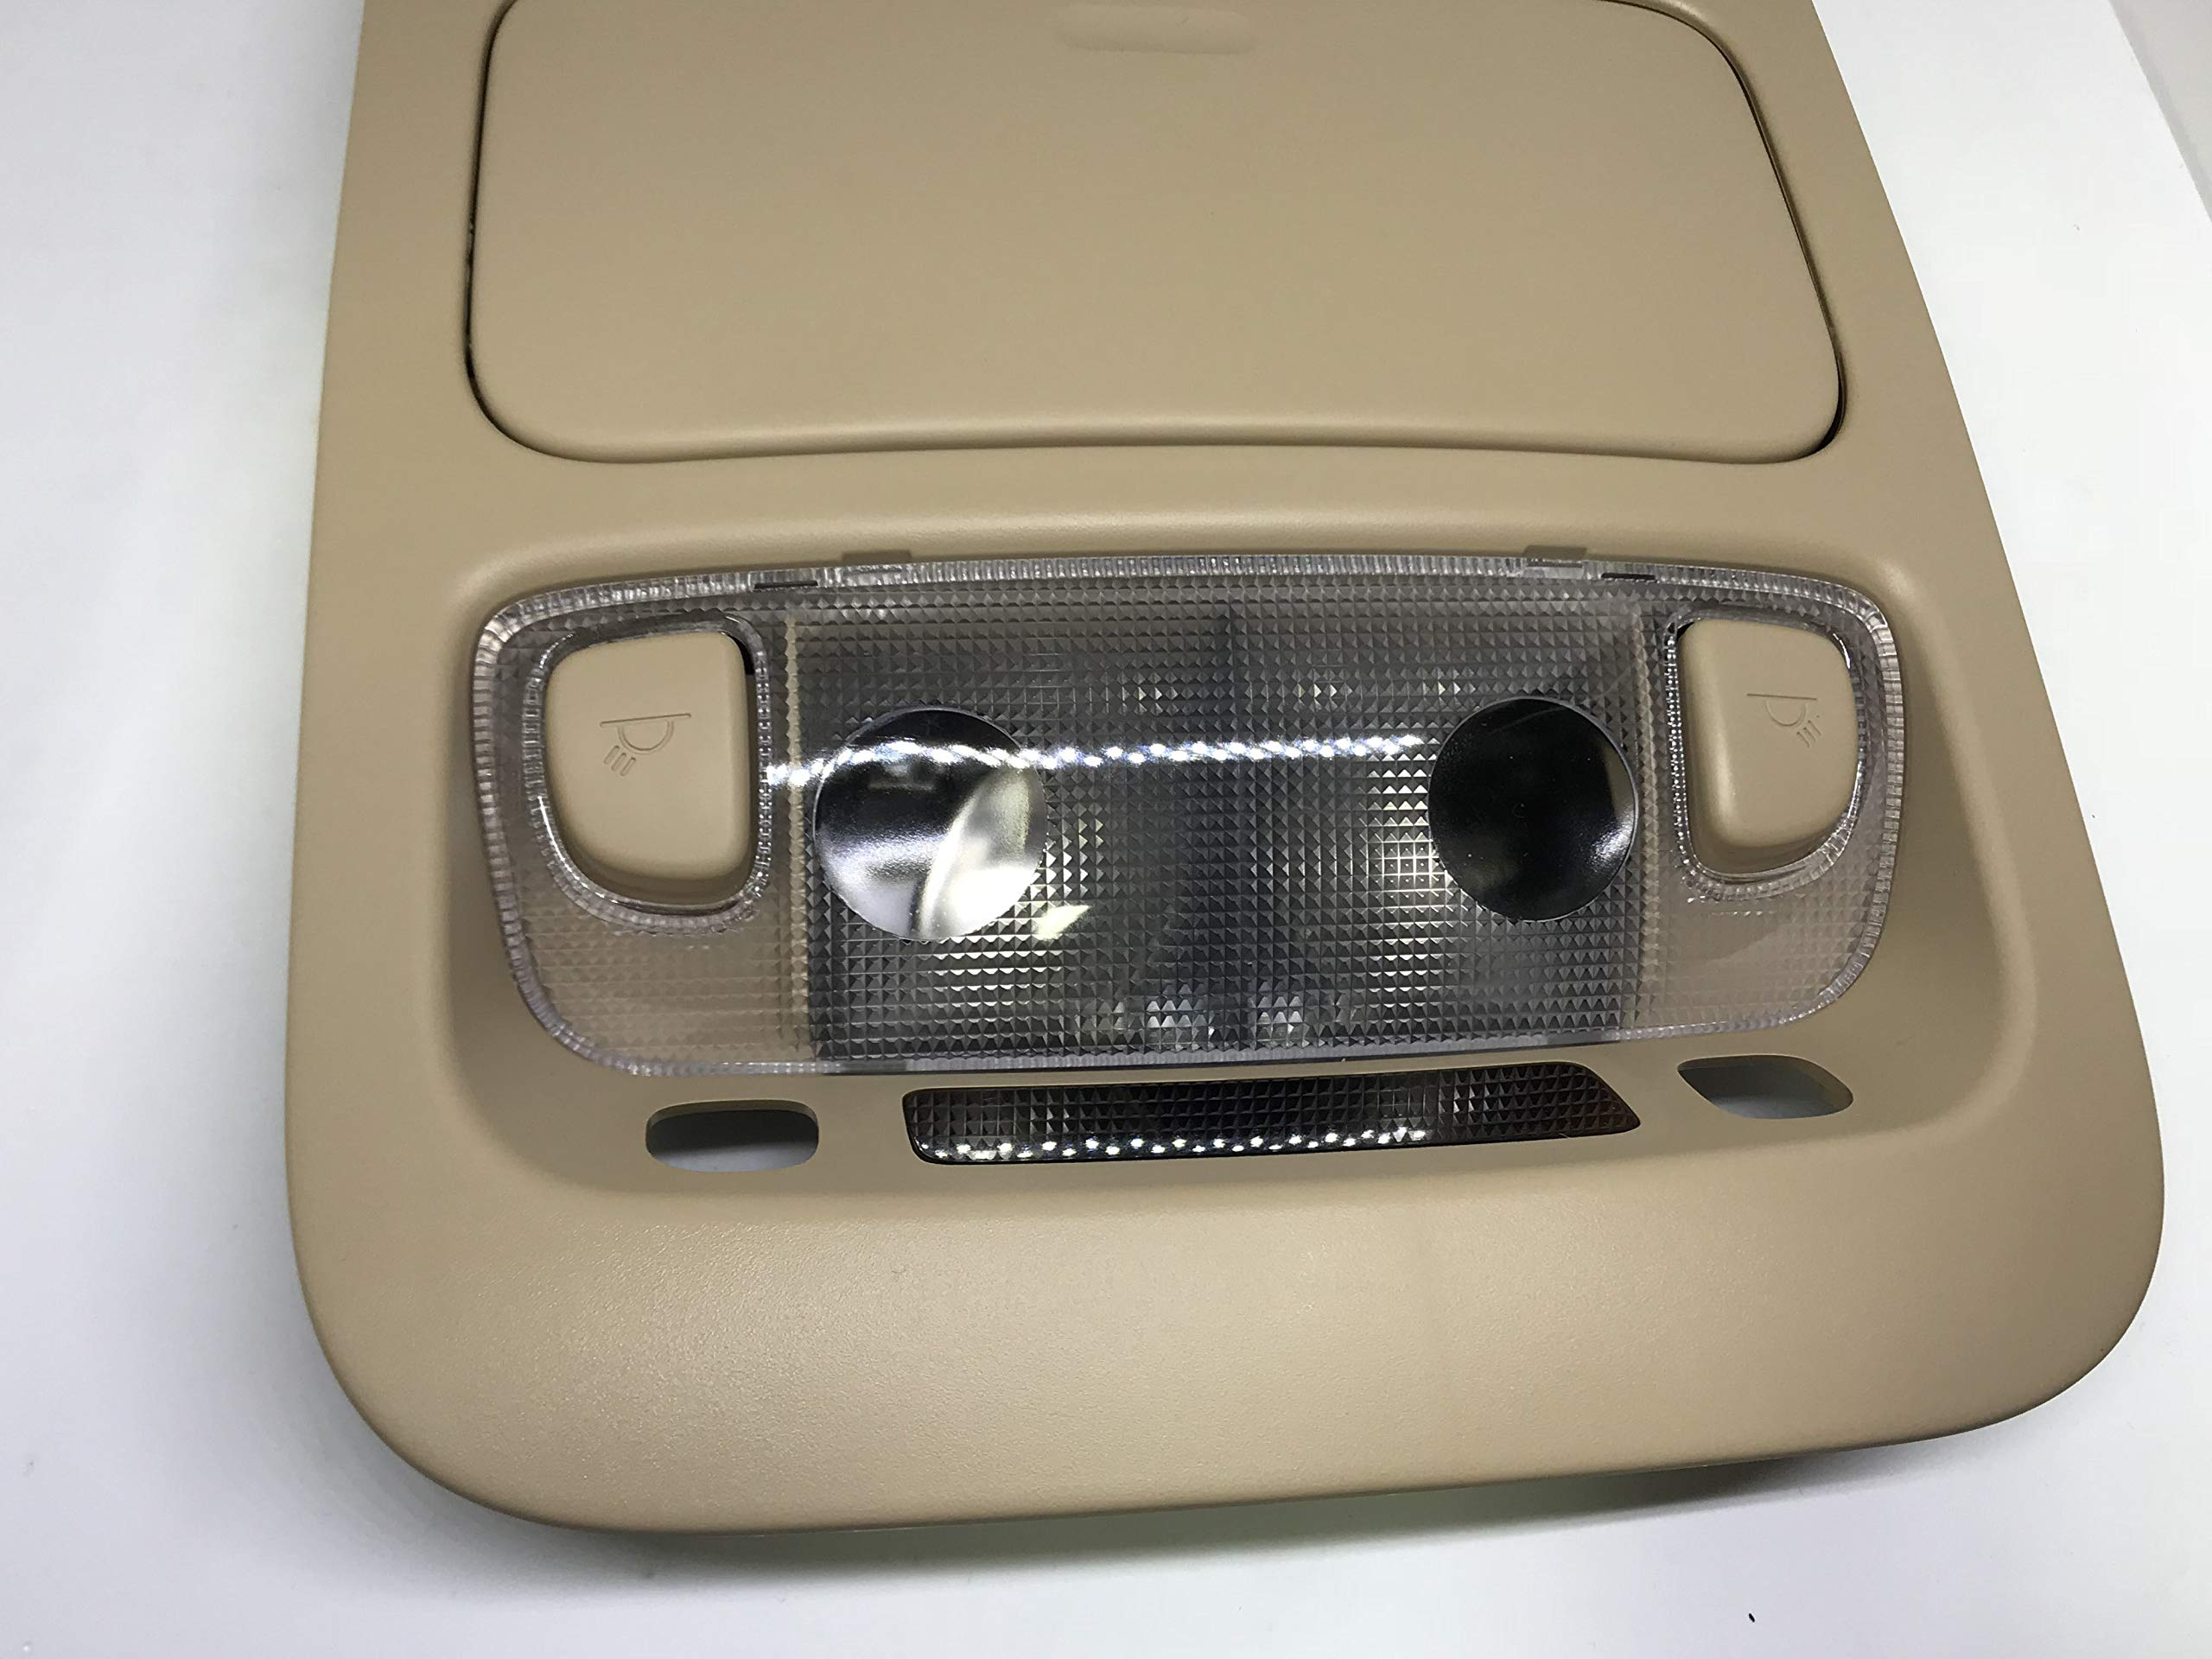 928214D100TW Overhead Console Map Lamp Beige for 2006 2014 Kia Sedona Carnival by Automotiveapple (Image #4)